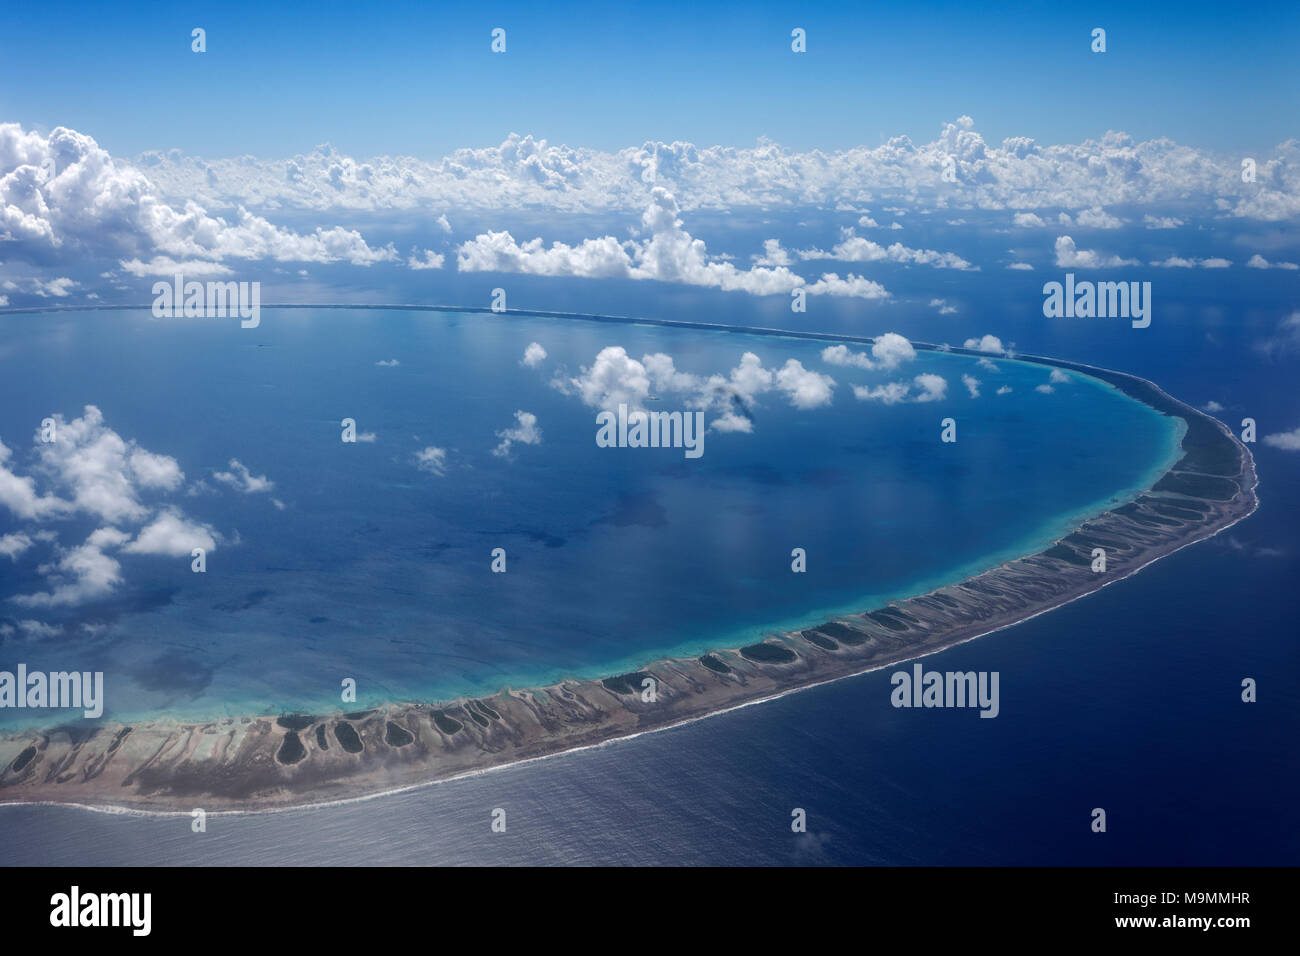 Aerial photo, Ringatoll, Rangiroa, society islands, Windward Islands, French Polynesia - Stock Image